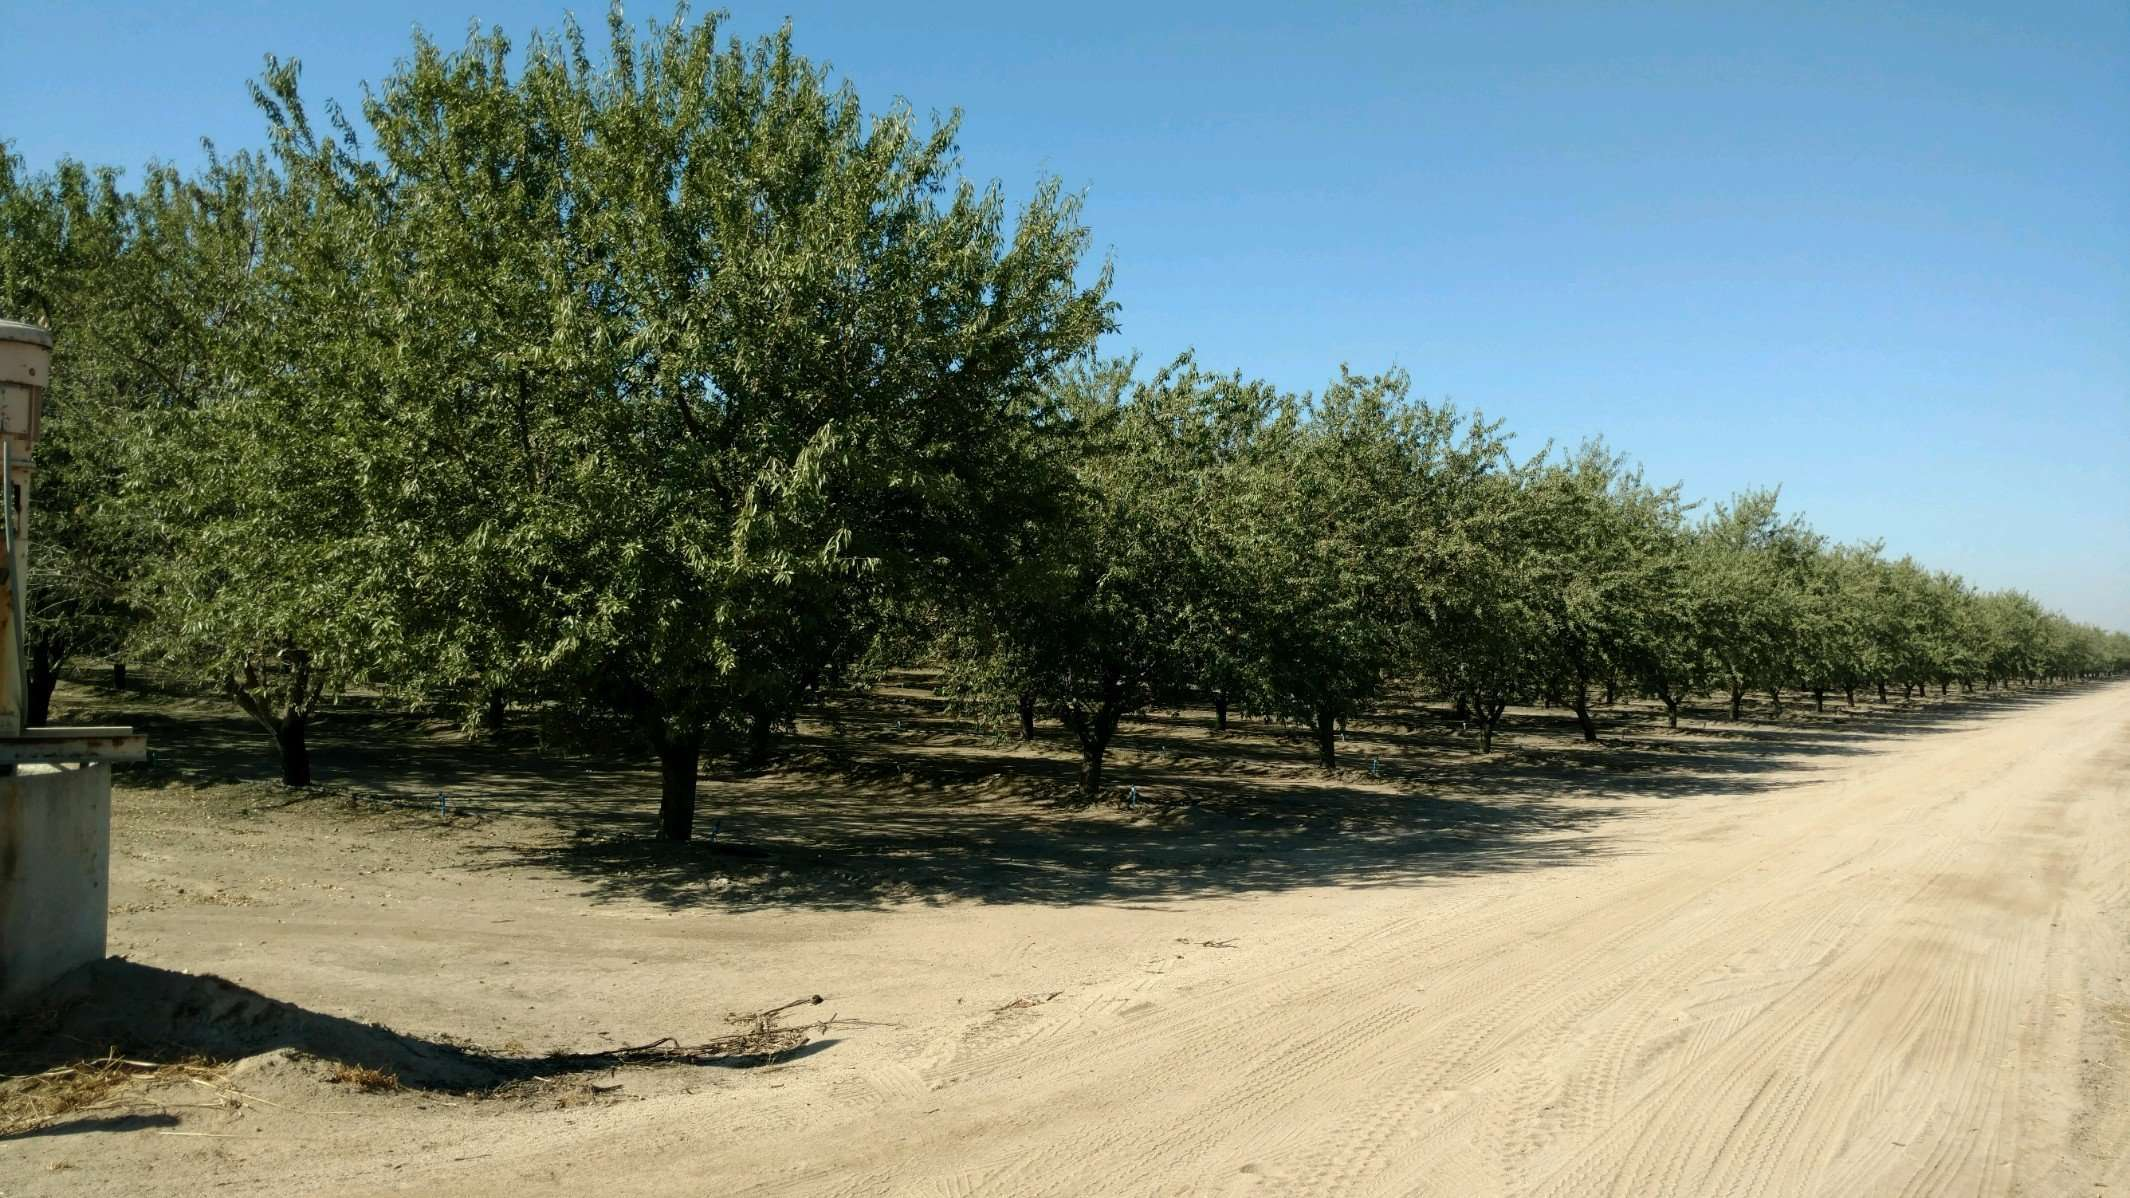 148.84 Acres Almonds, Prunes and Open Land, Strathmore